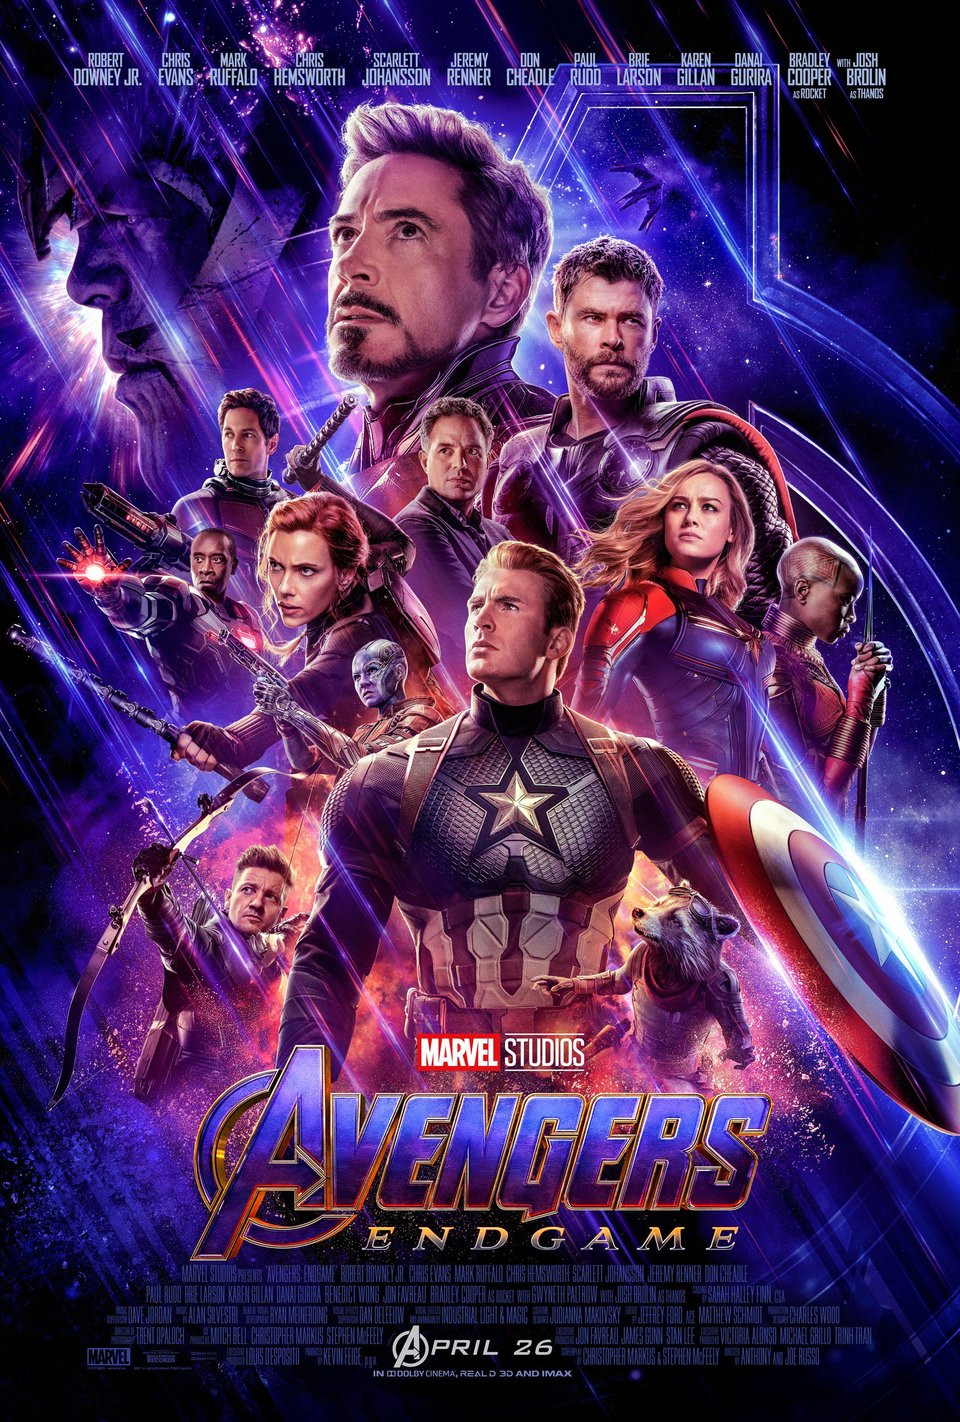 'Avengers: Endgame' poster reissued to include 'Black Panther' star Danai Gurira's in group billing.